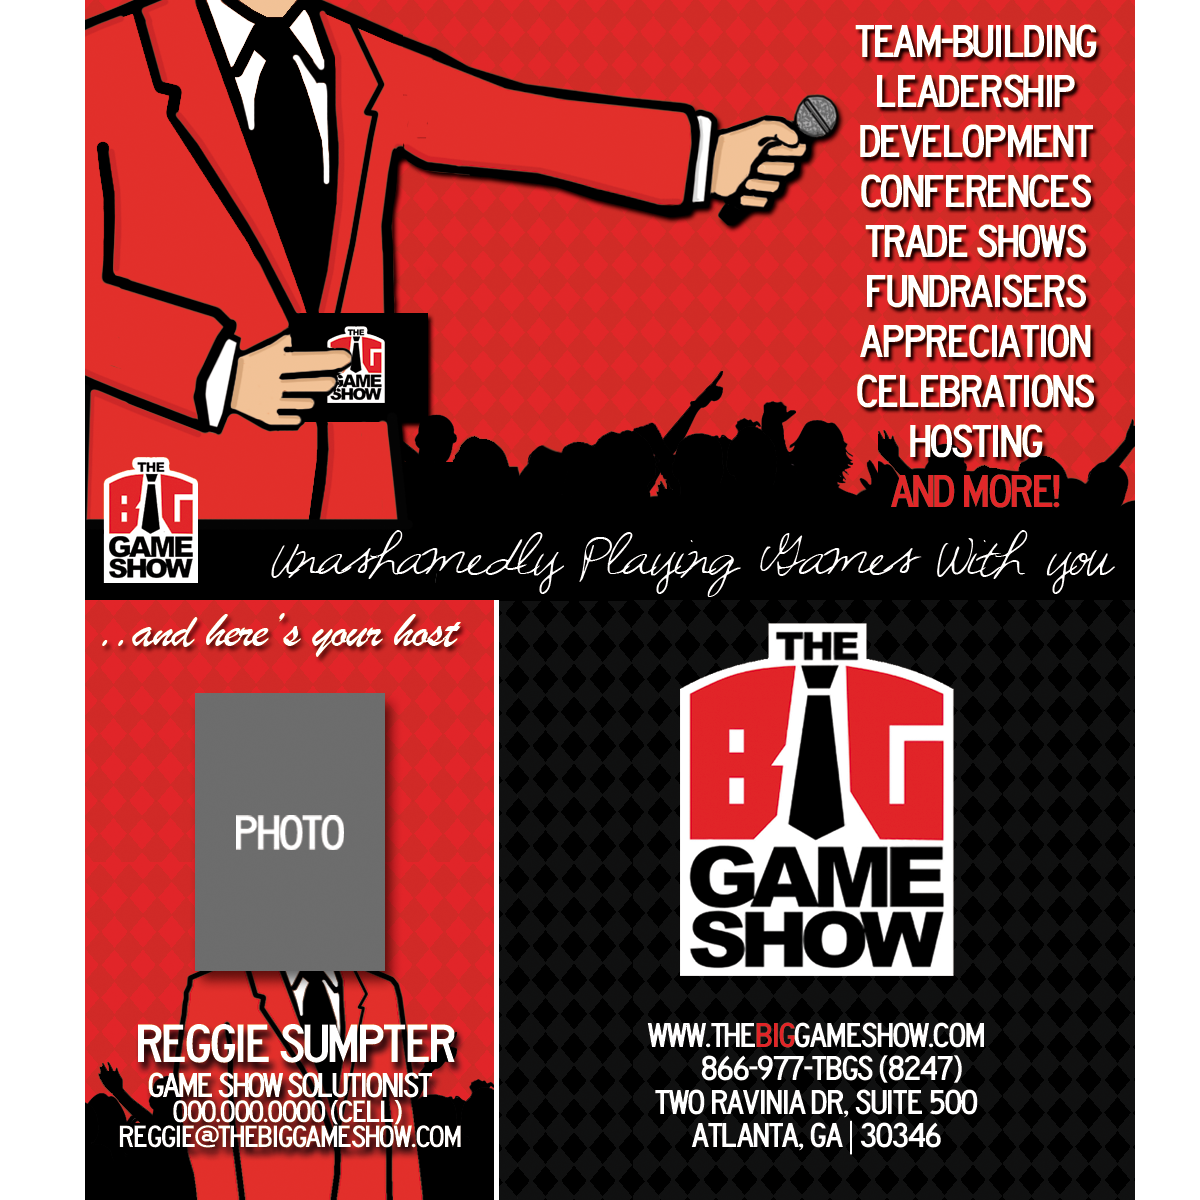 Business Card Design by bambino - Entry No. 30 in the Business Card Design Contest The Big Game Show business cards.